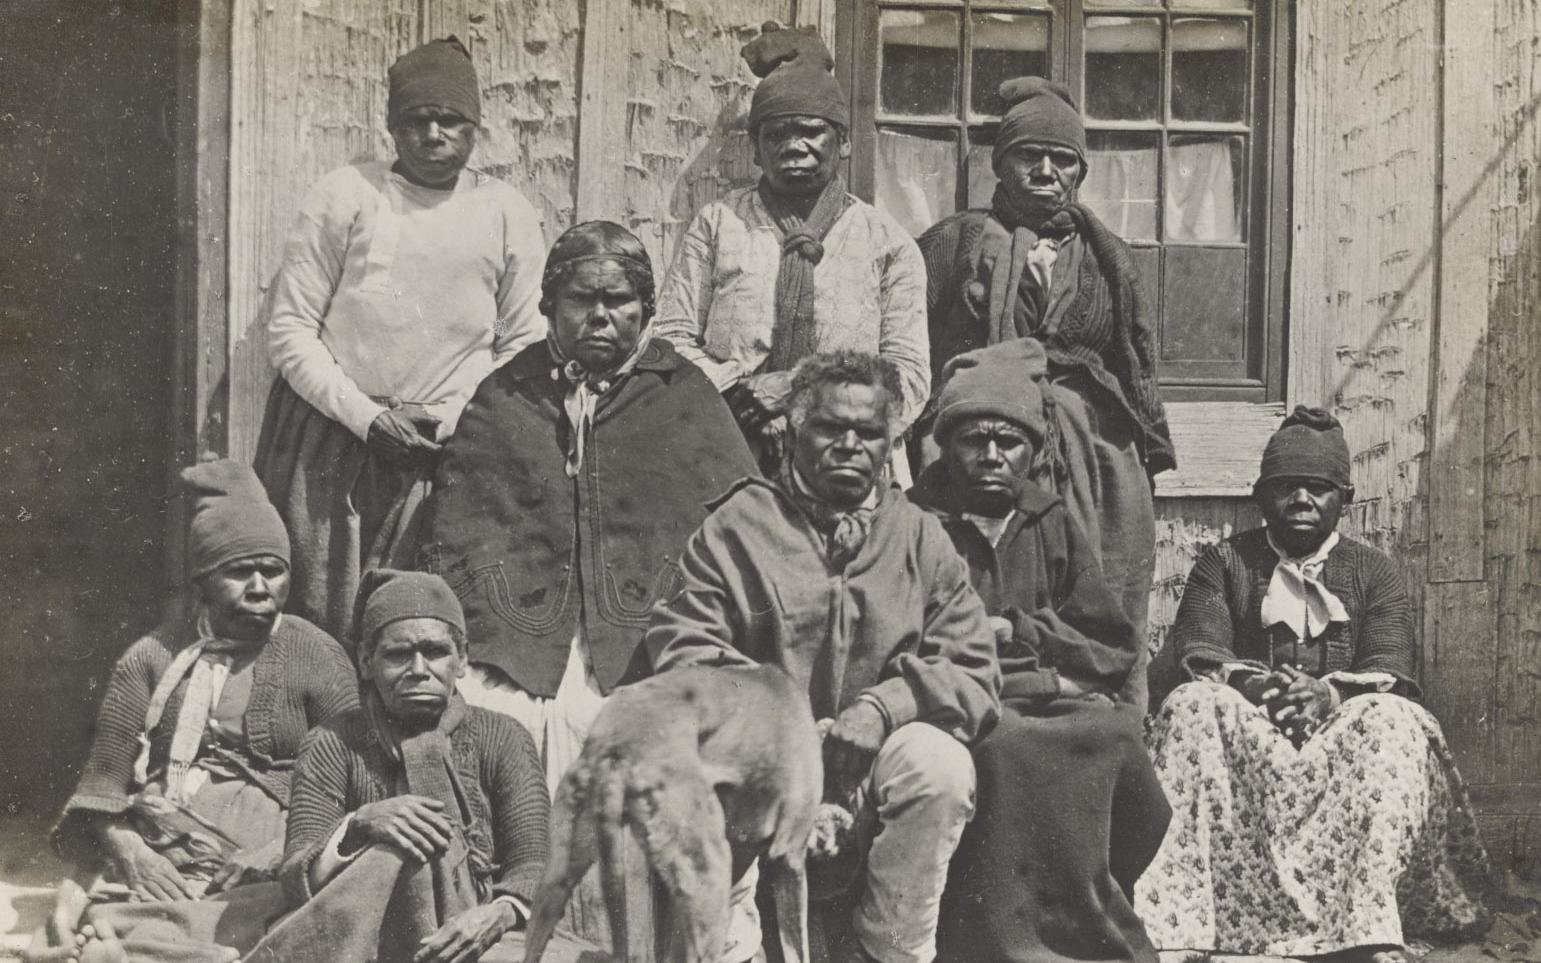 Tasmanian Aboriginal people at Oyster Cove